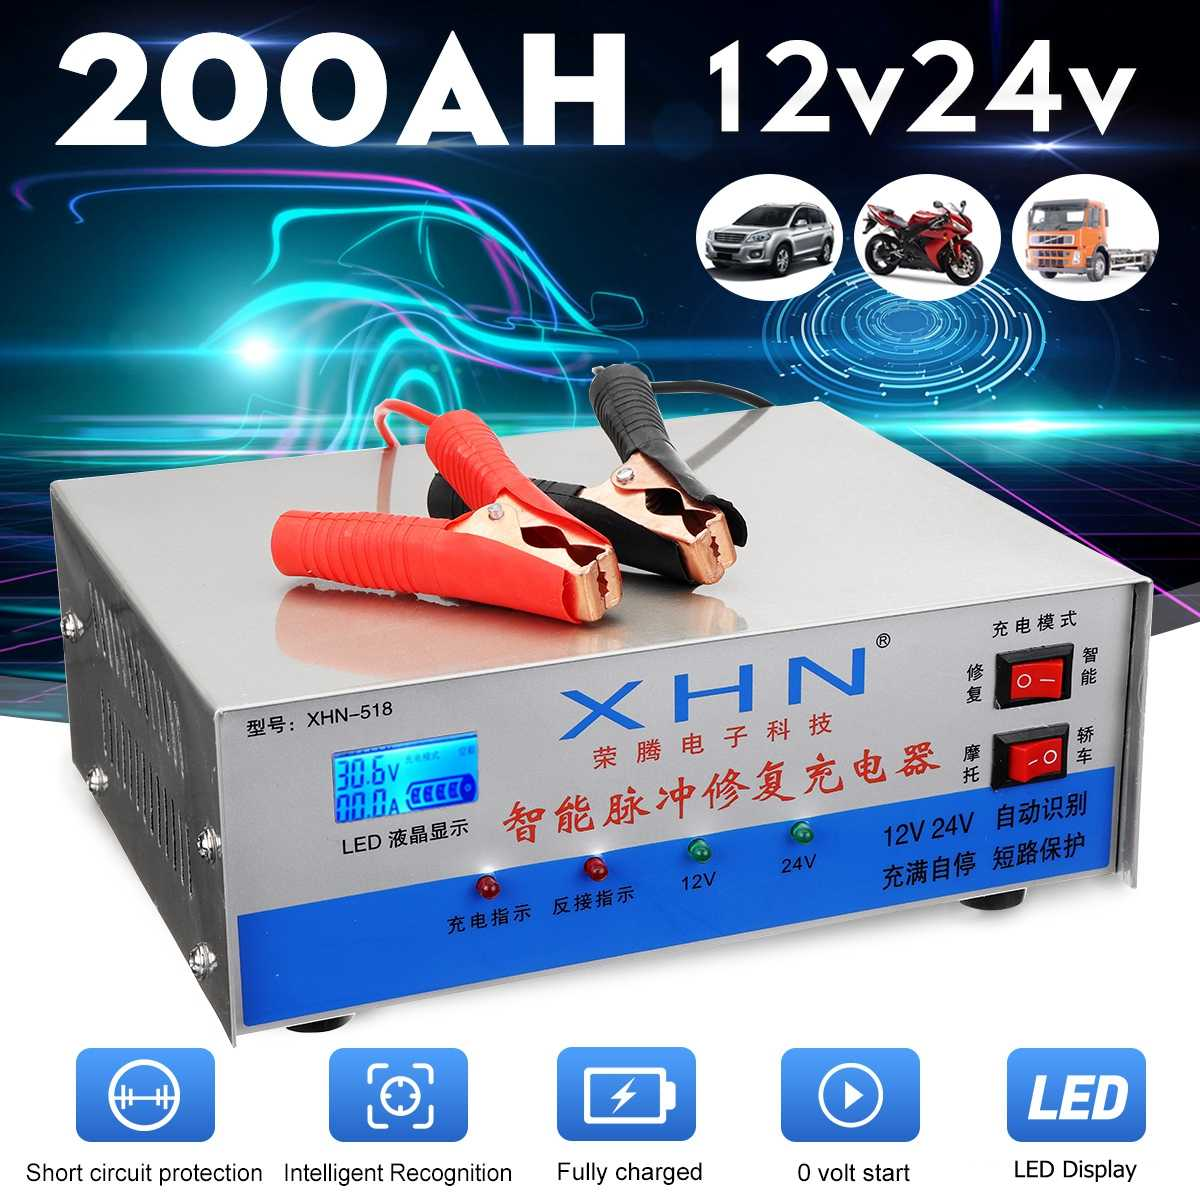 12V 24V Car Battery Charger Intelligent Pulse Repair Charger LED Display Voltage Automatic Identification 200AH